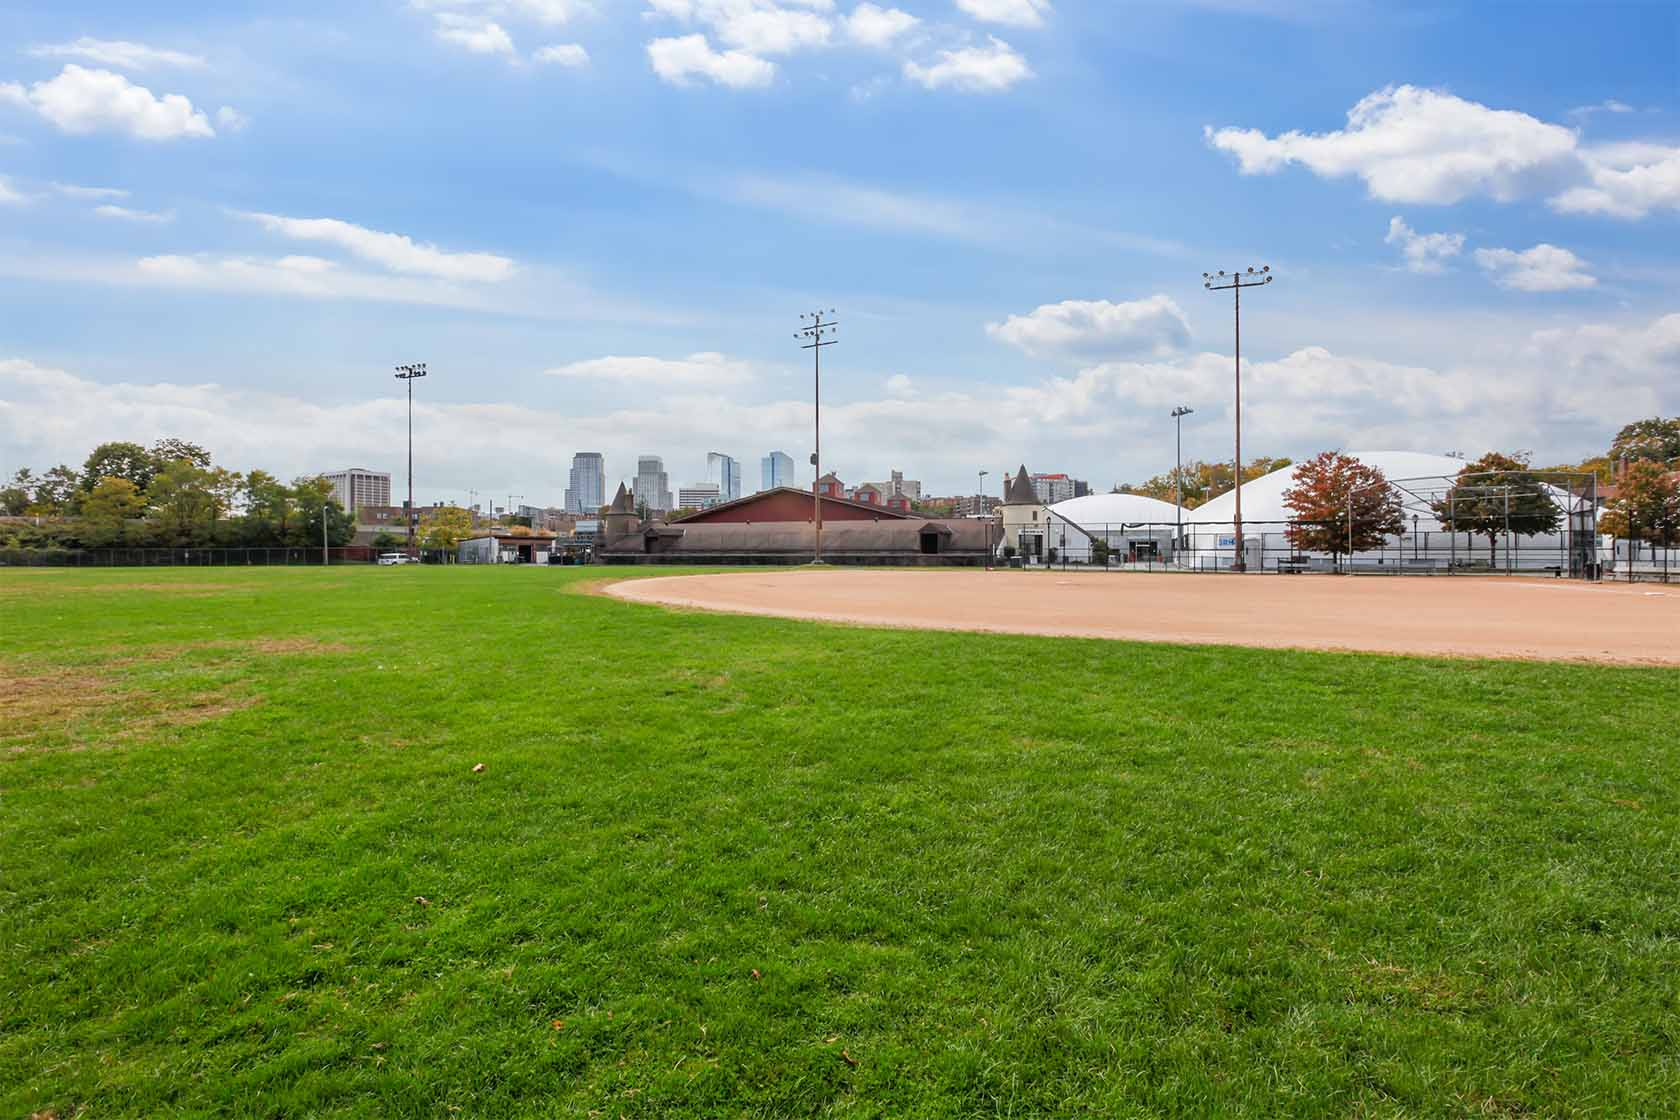 An image of the baseball field at Delfino Park.